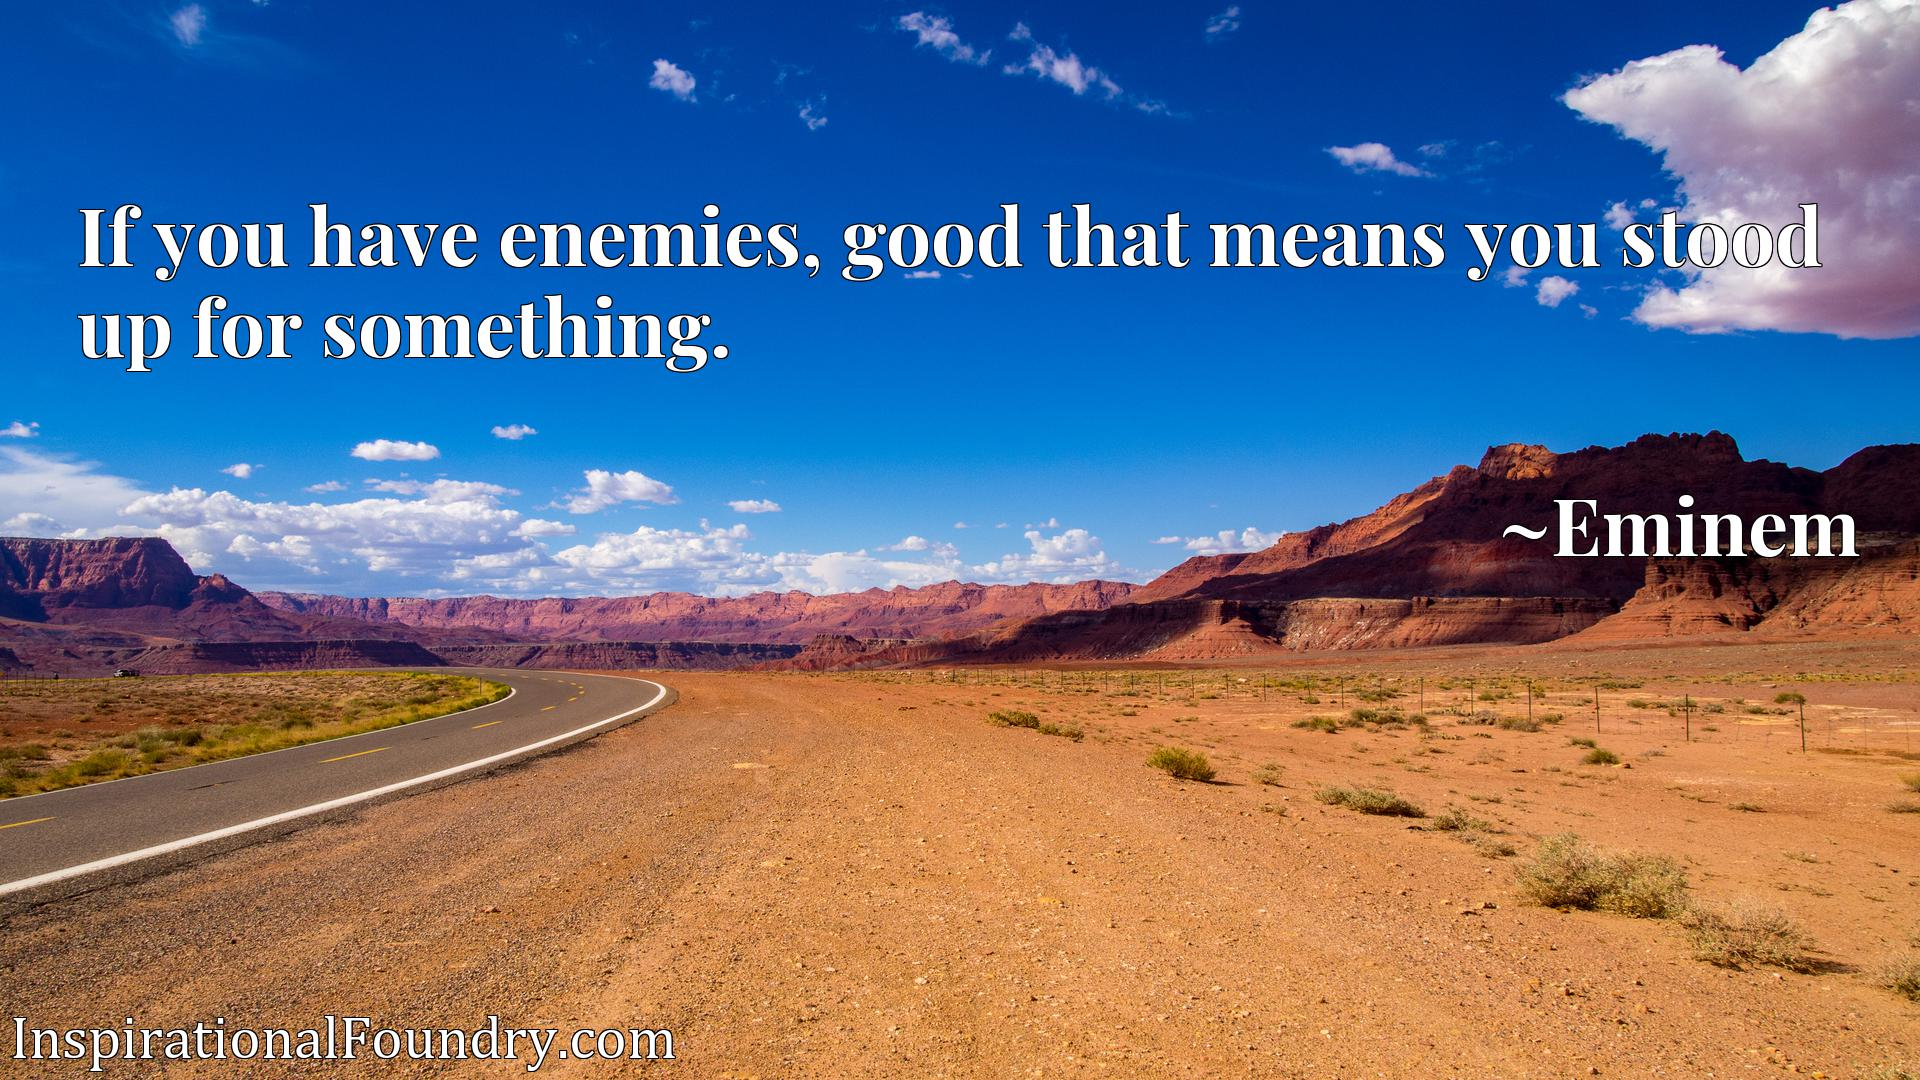 If you have enemies, good that means you stood up for something.